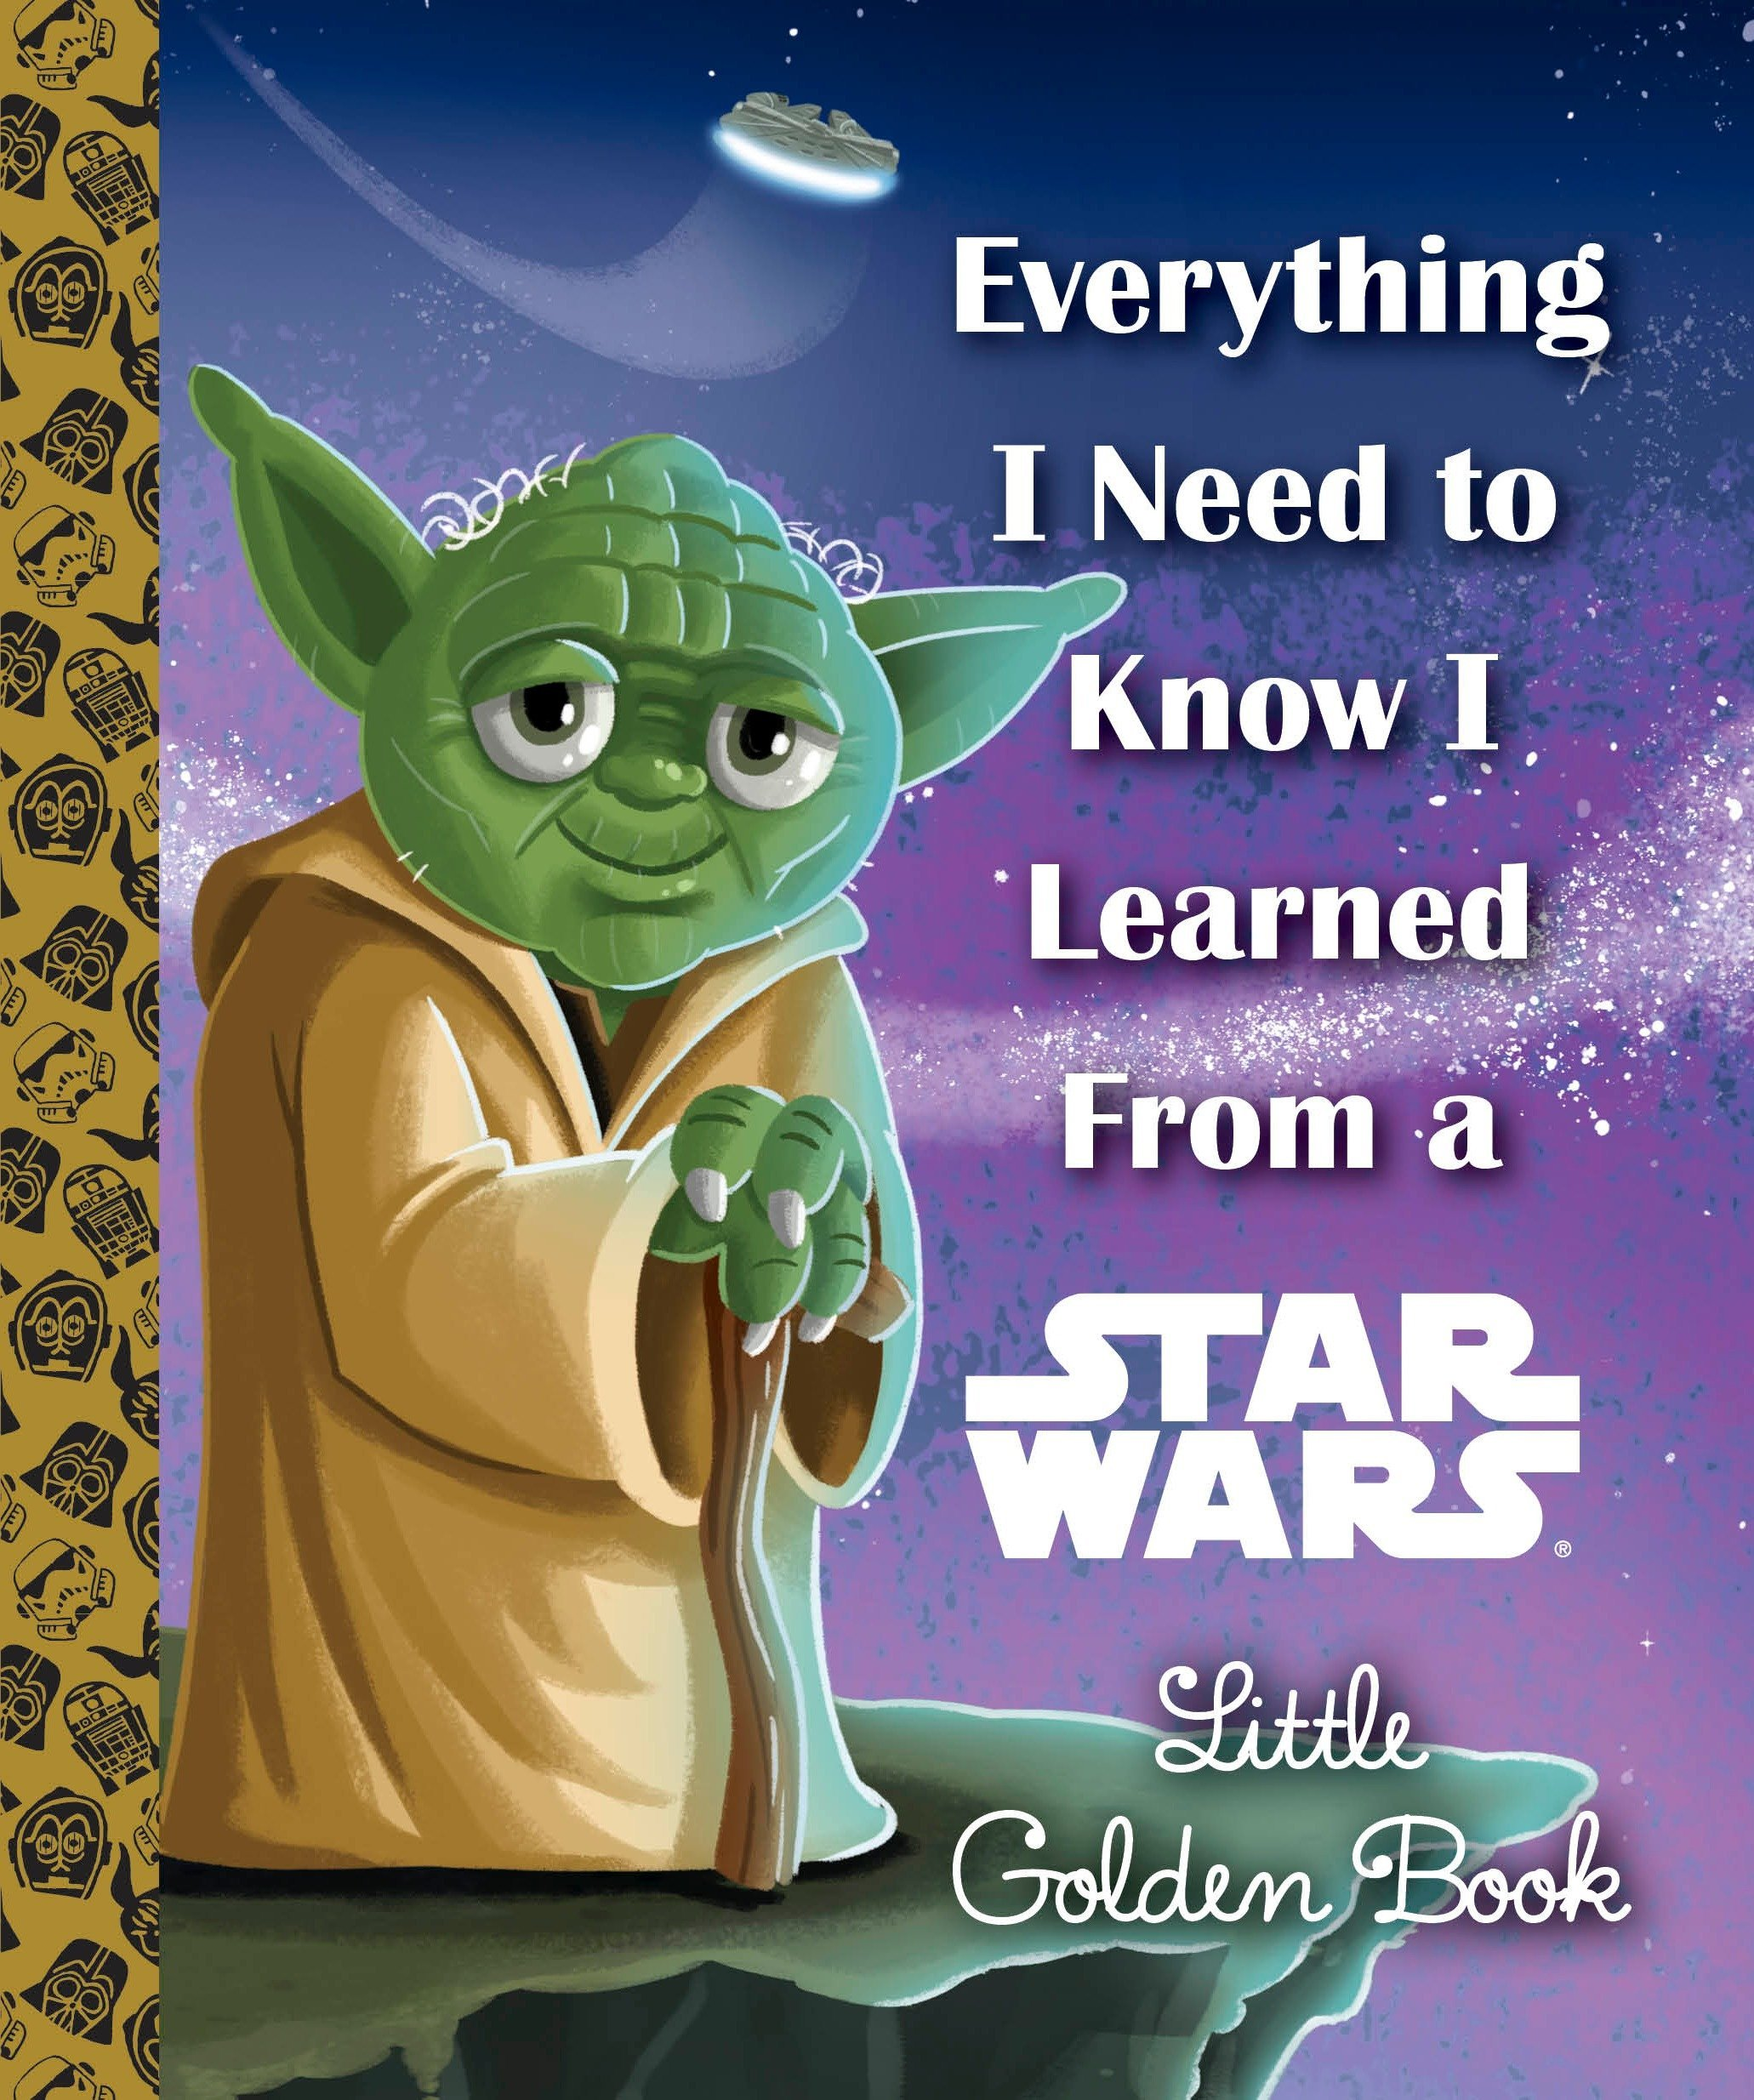 Everything I Need to Know I Learned from a Star Wars Little Golden Book